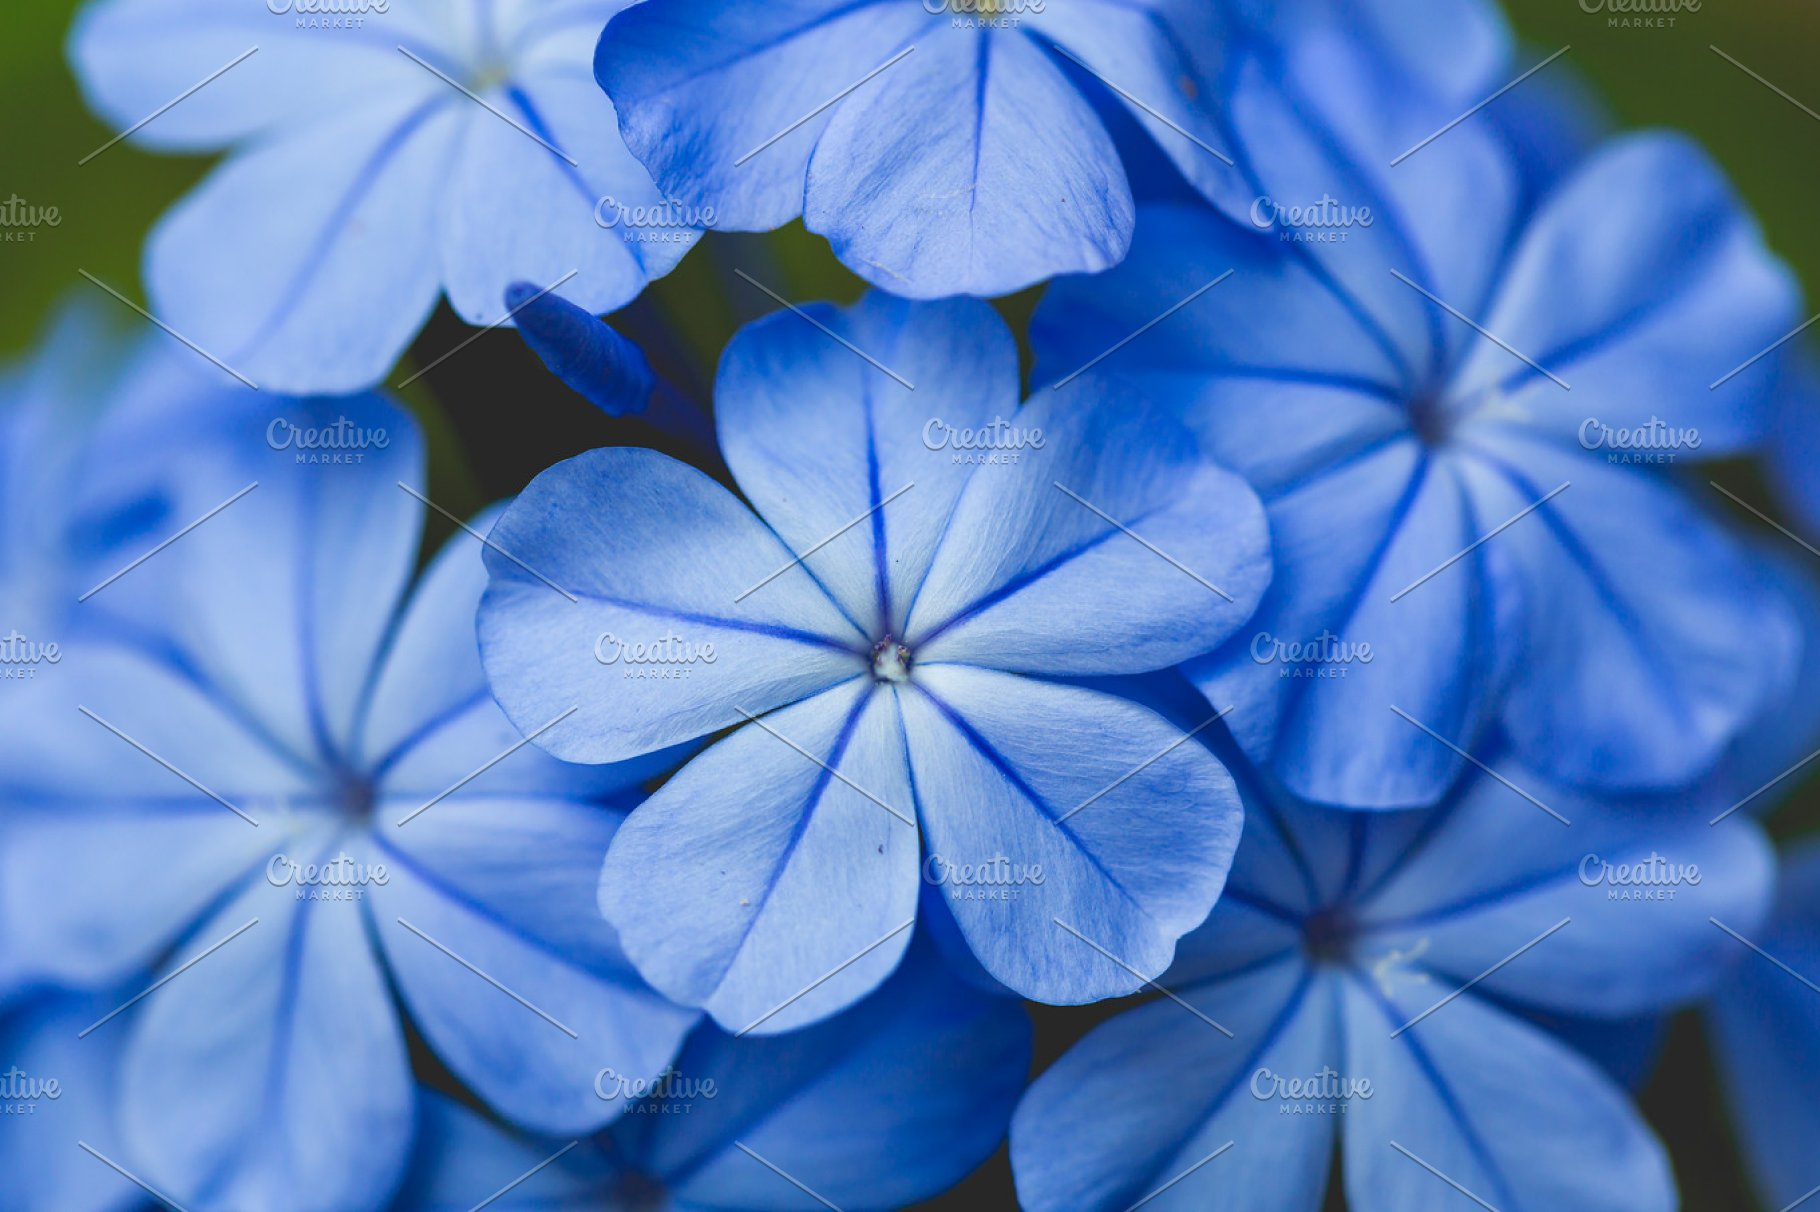 Beautiful Blue Flower Background High Quality Nature Stock